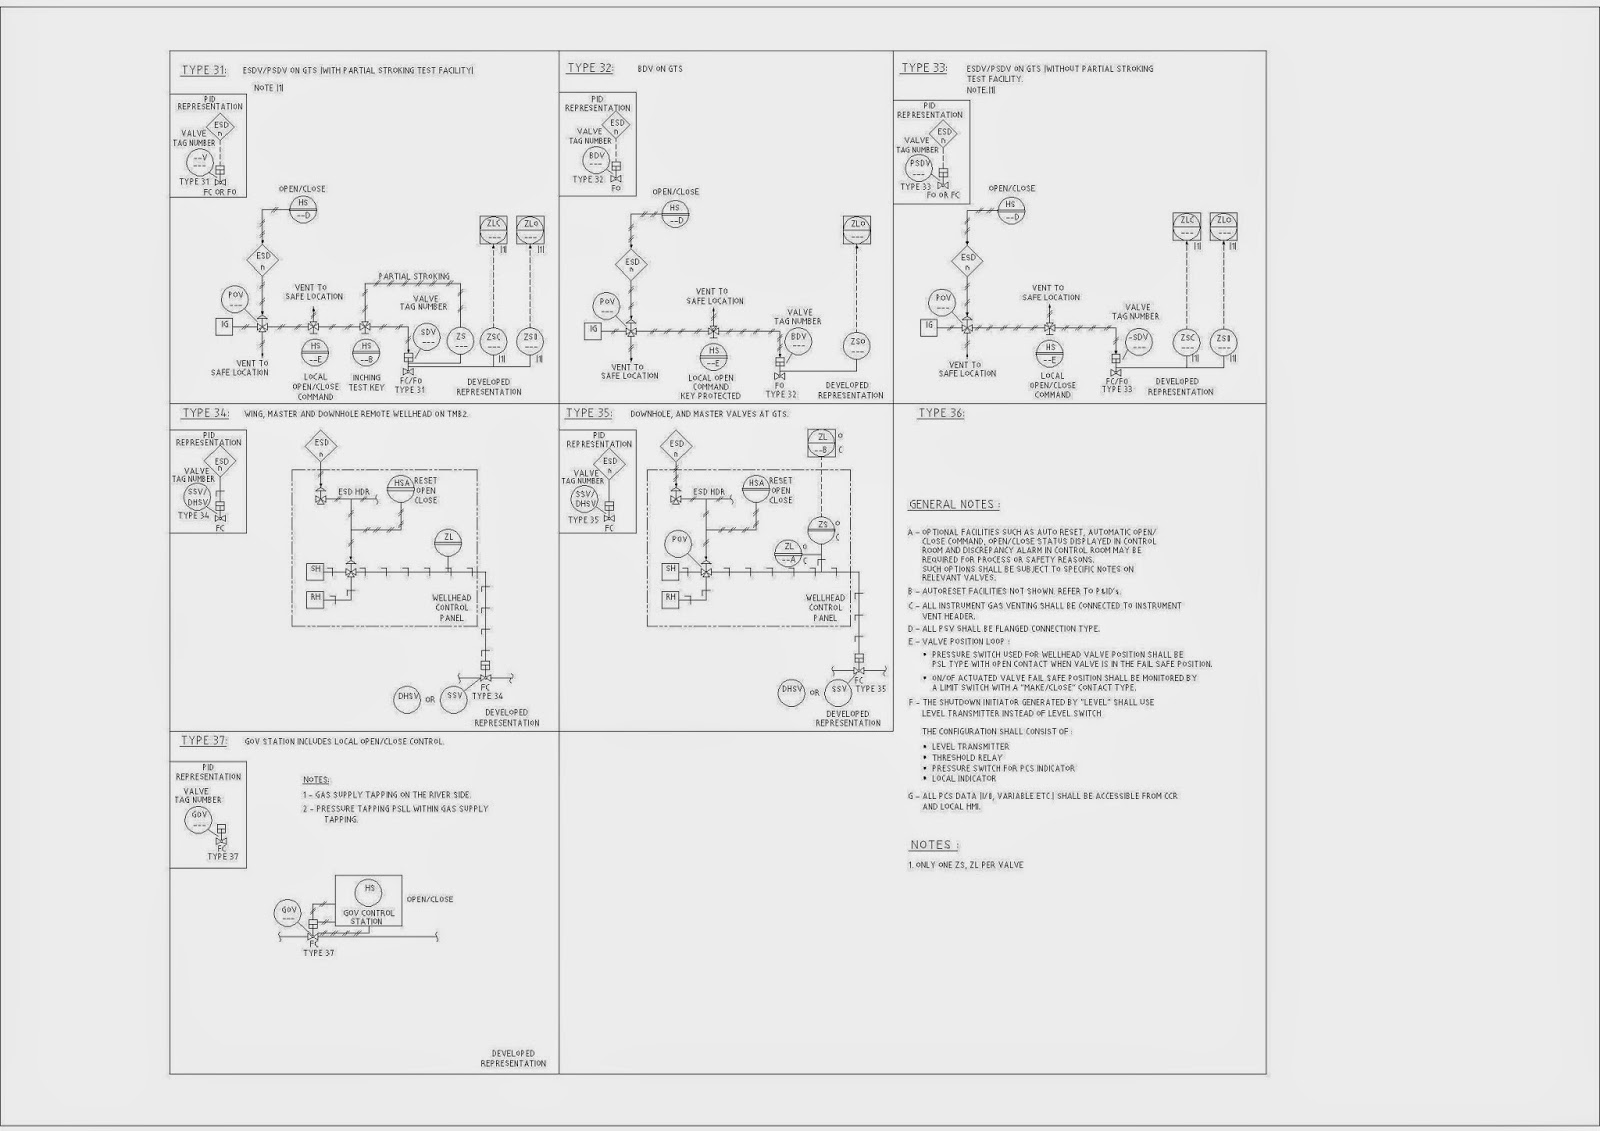 r land baidin egwar  st  piping  u0026 instrumentation diagram